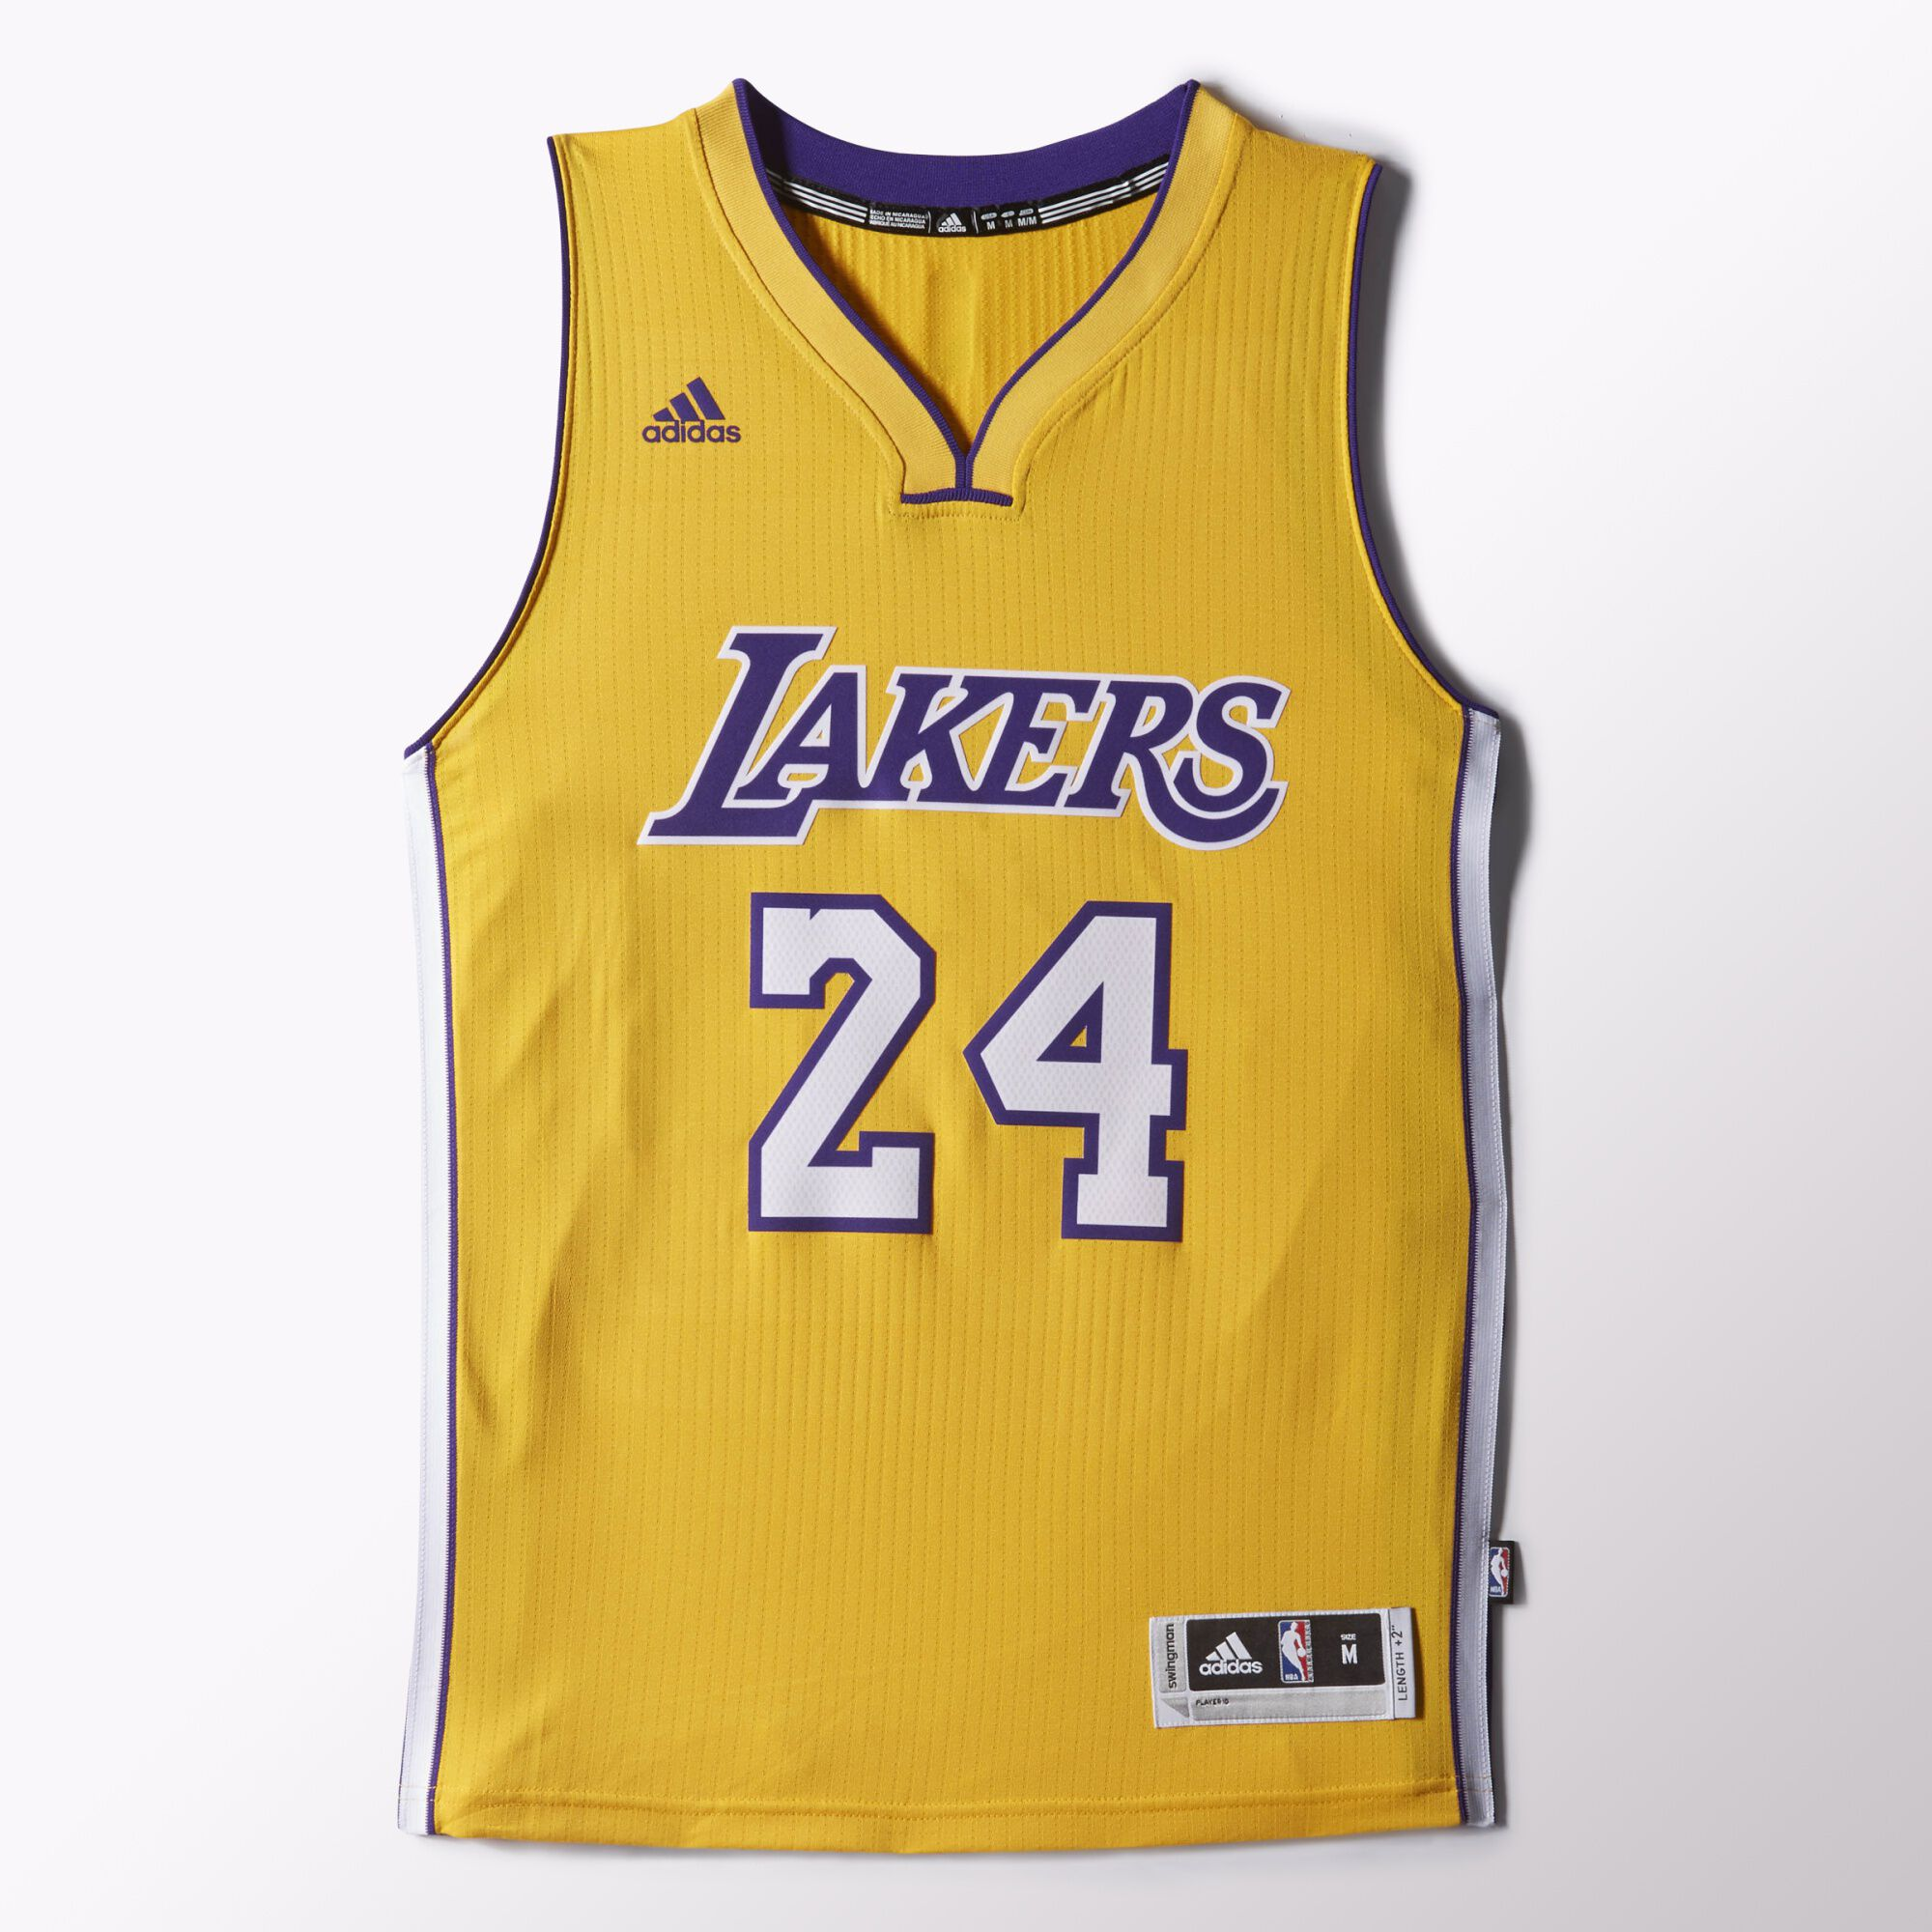 Wholesale NBA Jerseys | JERESYS_dFAS12483